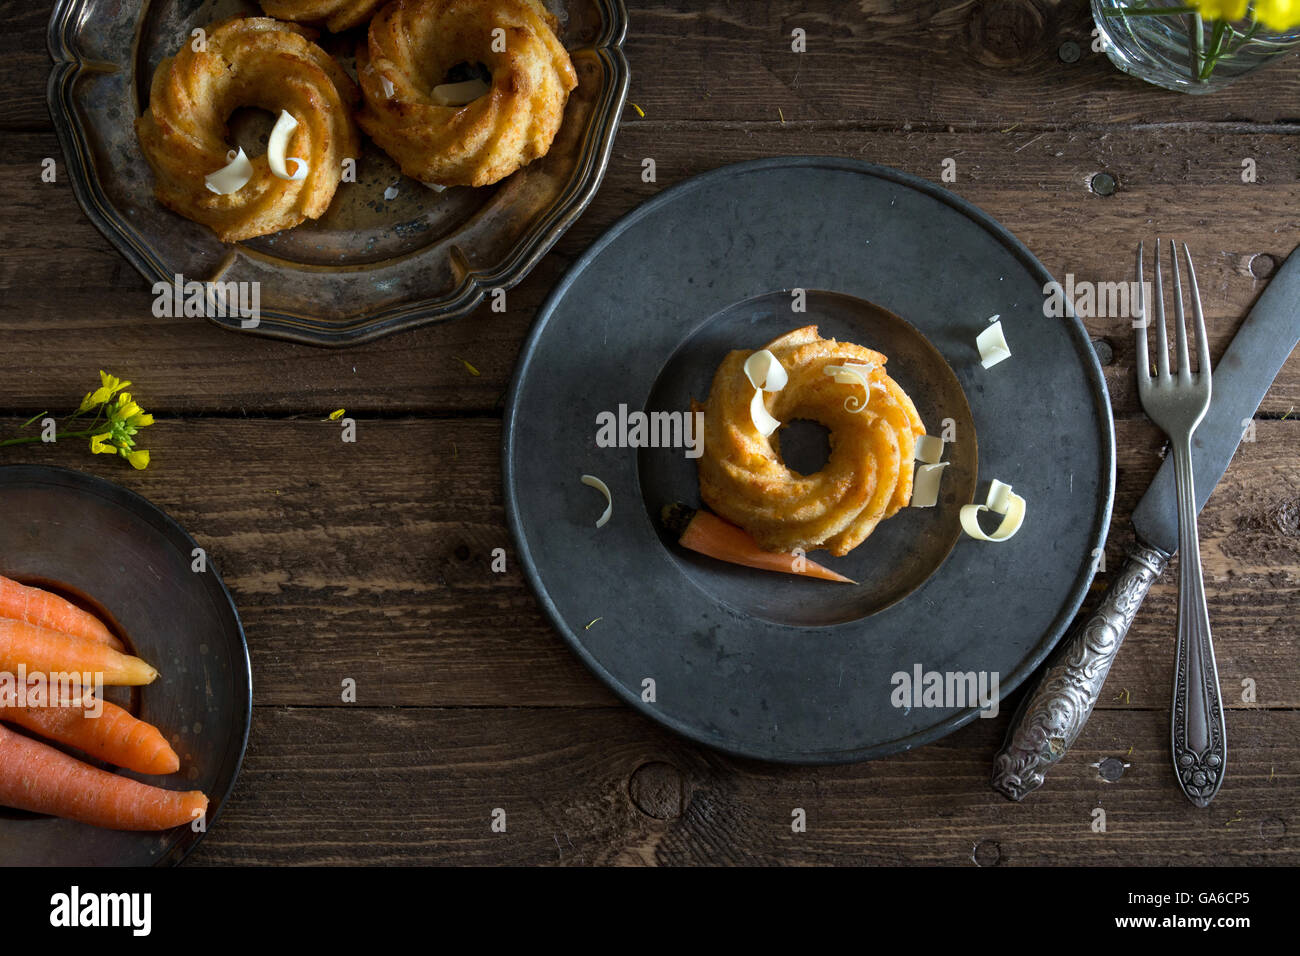 mini carrot cake with white chocolate on a rustic wooden table. - Stock Image